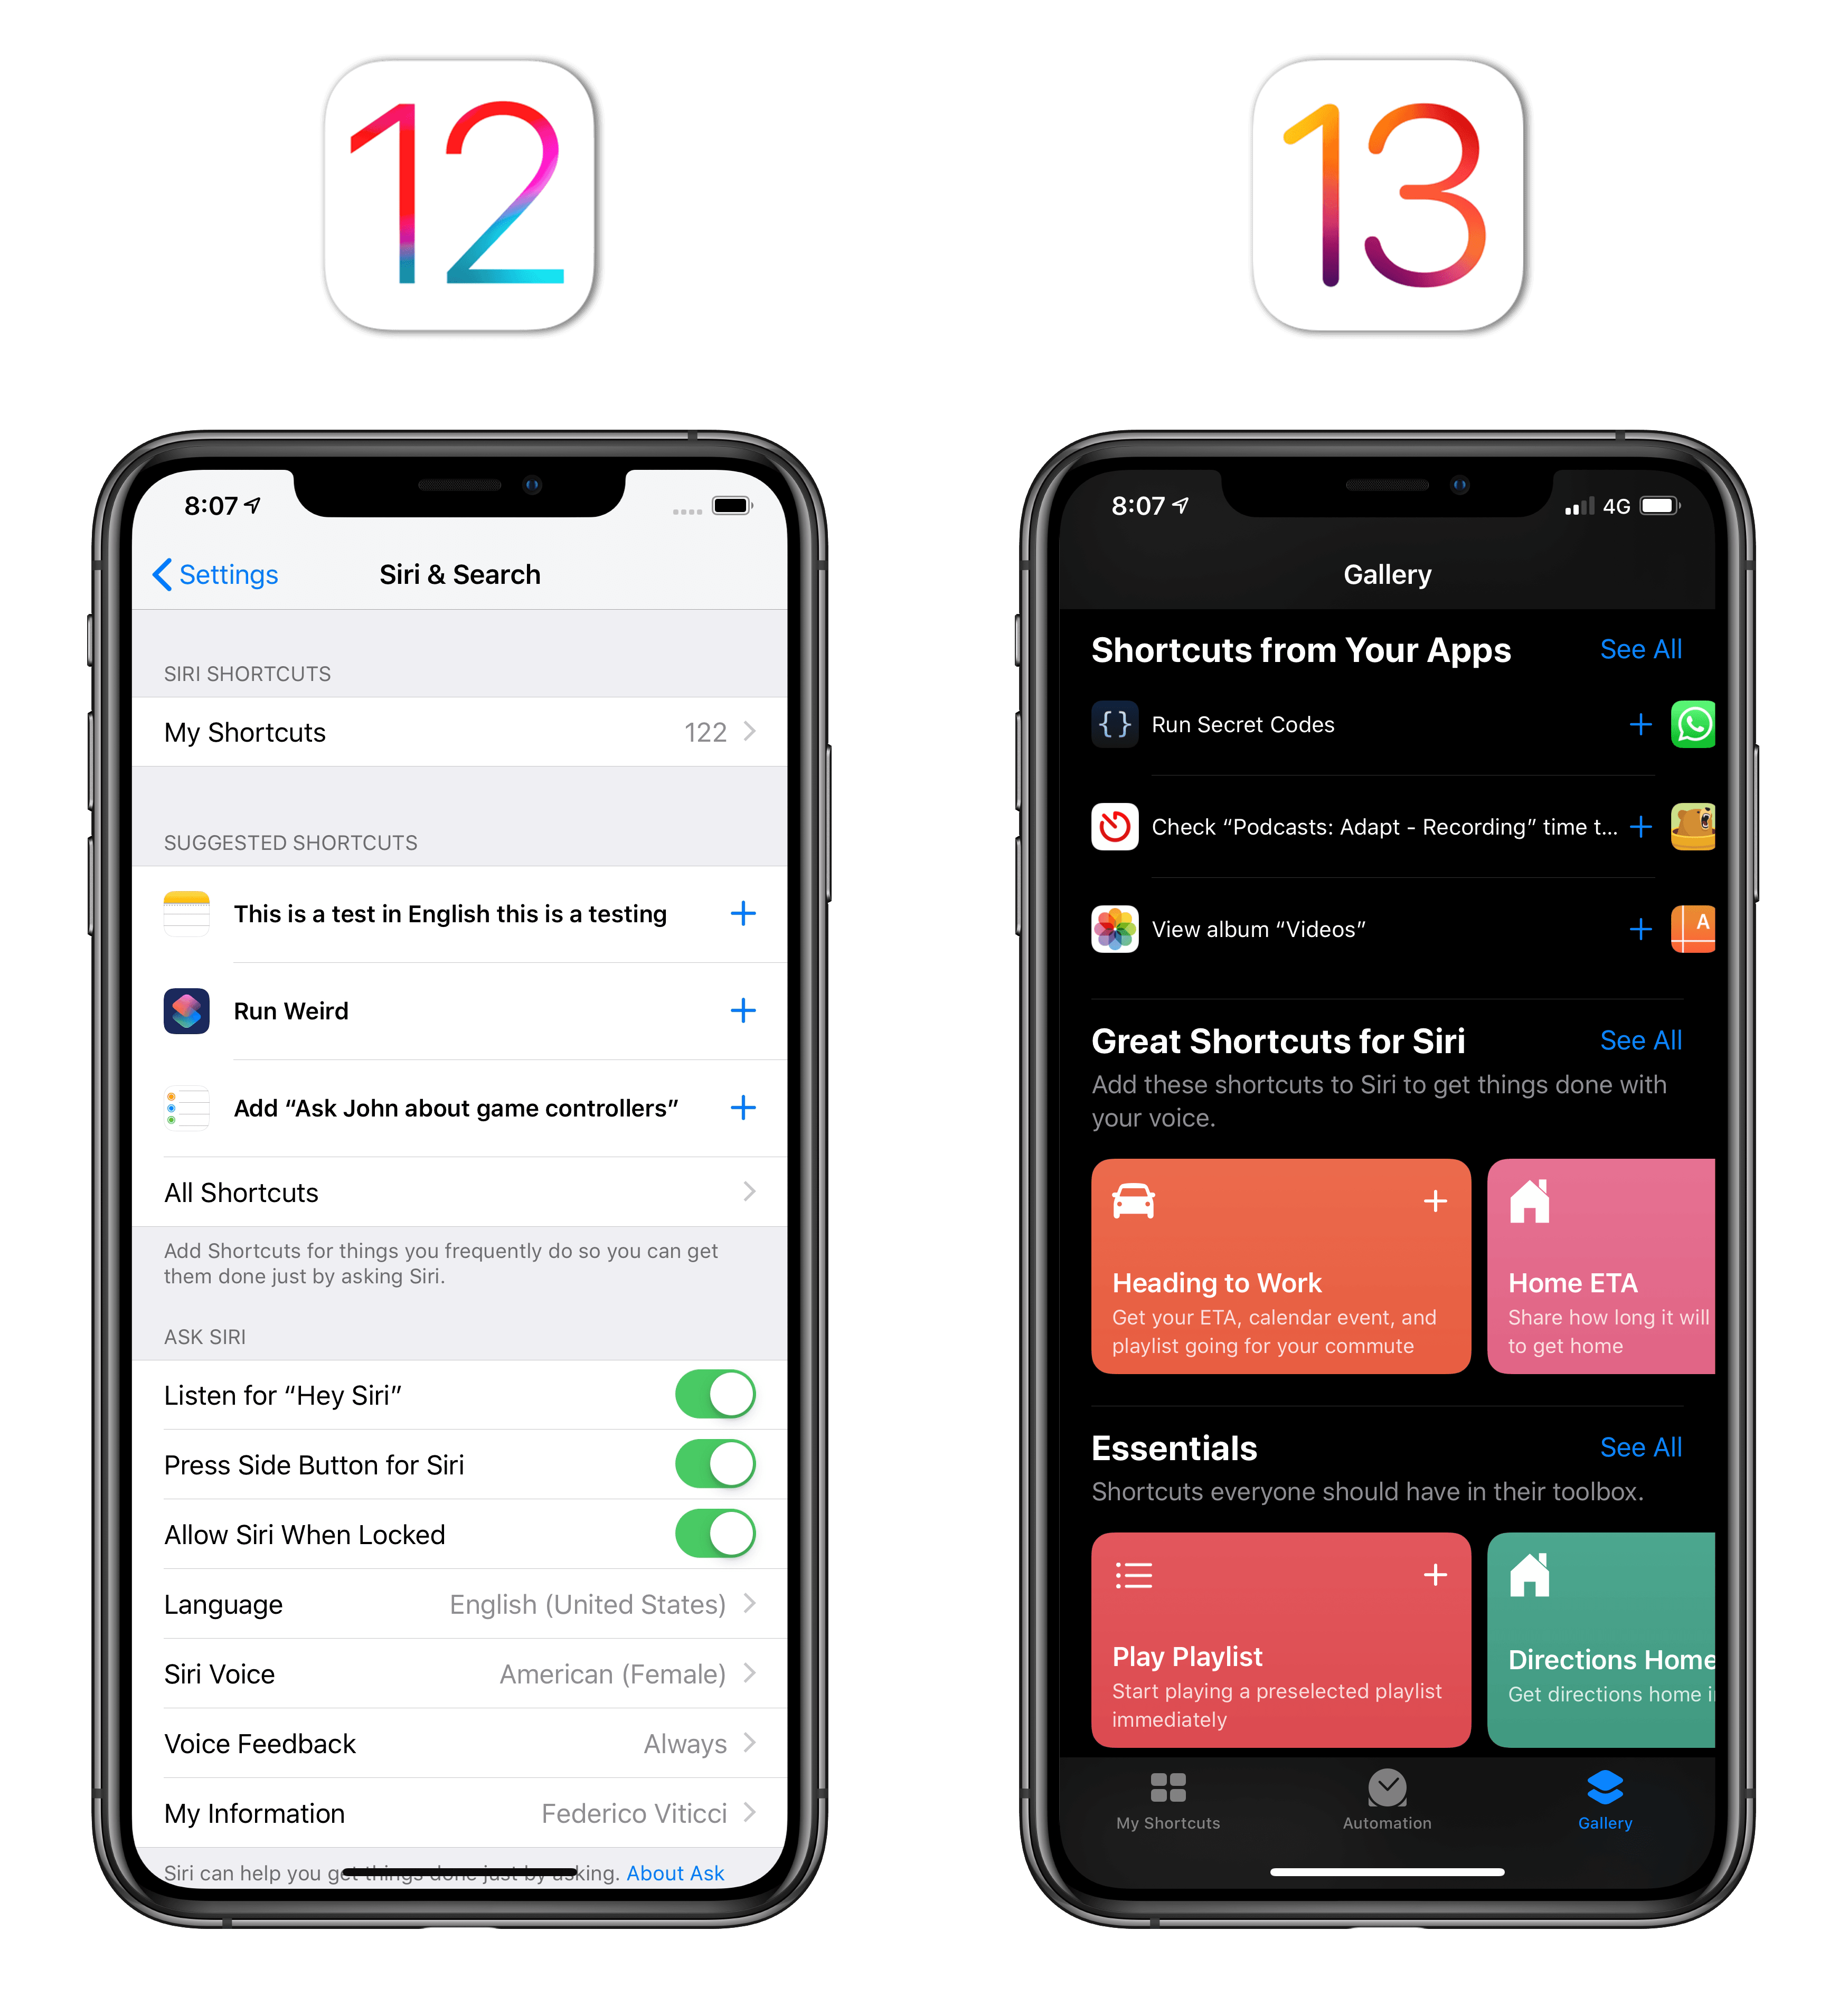 Shortcut suggestions live in the Shortcuts app's gallery in iOS 13.